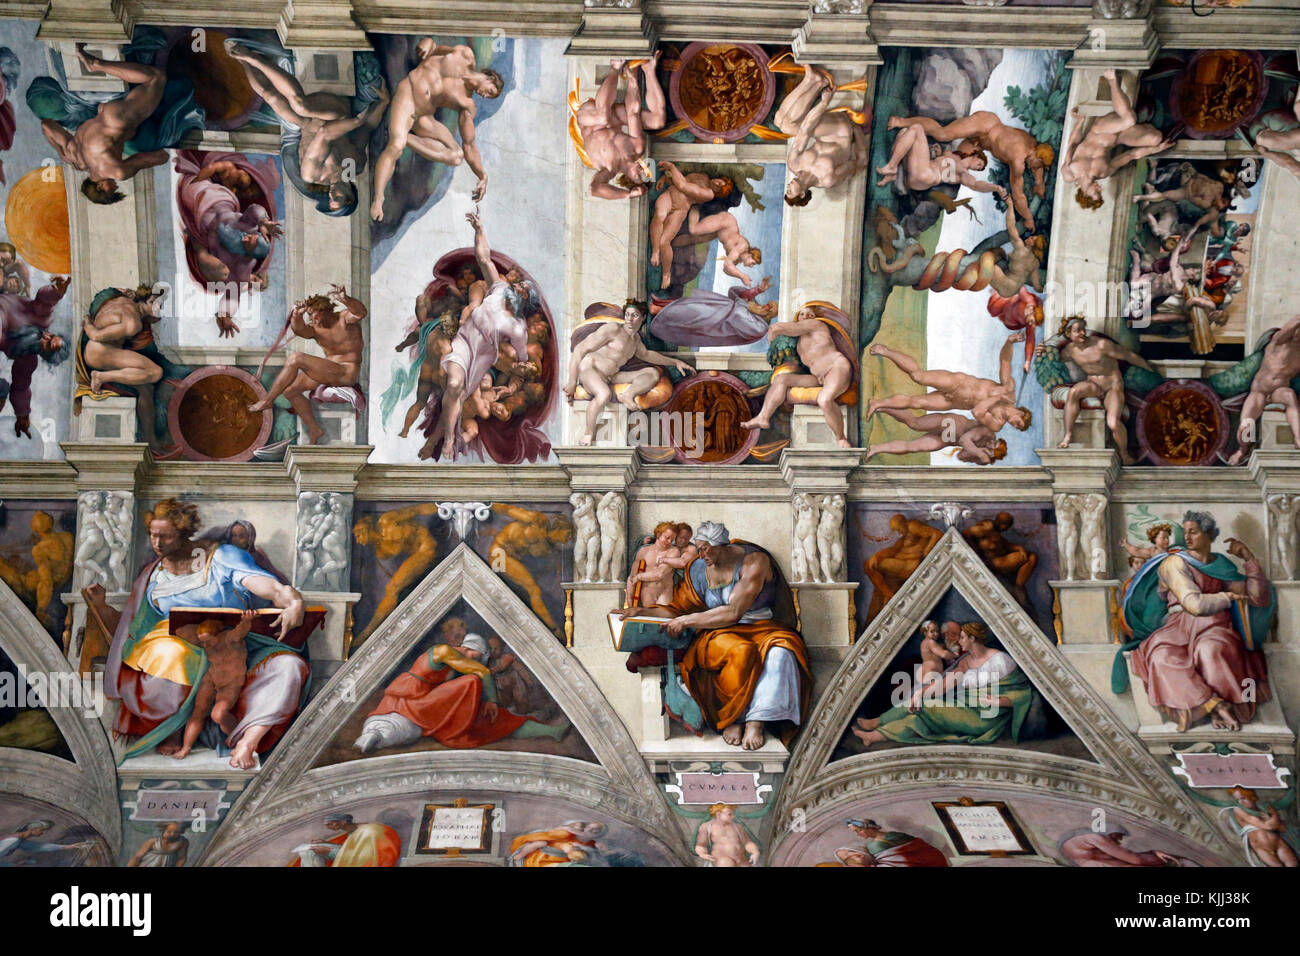 Vatican museums, Rome. Sixtine chapel. Italy. - Stock Image